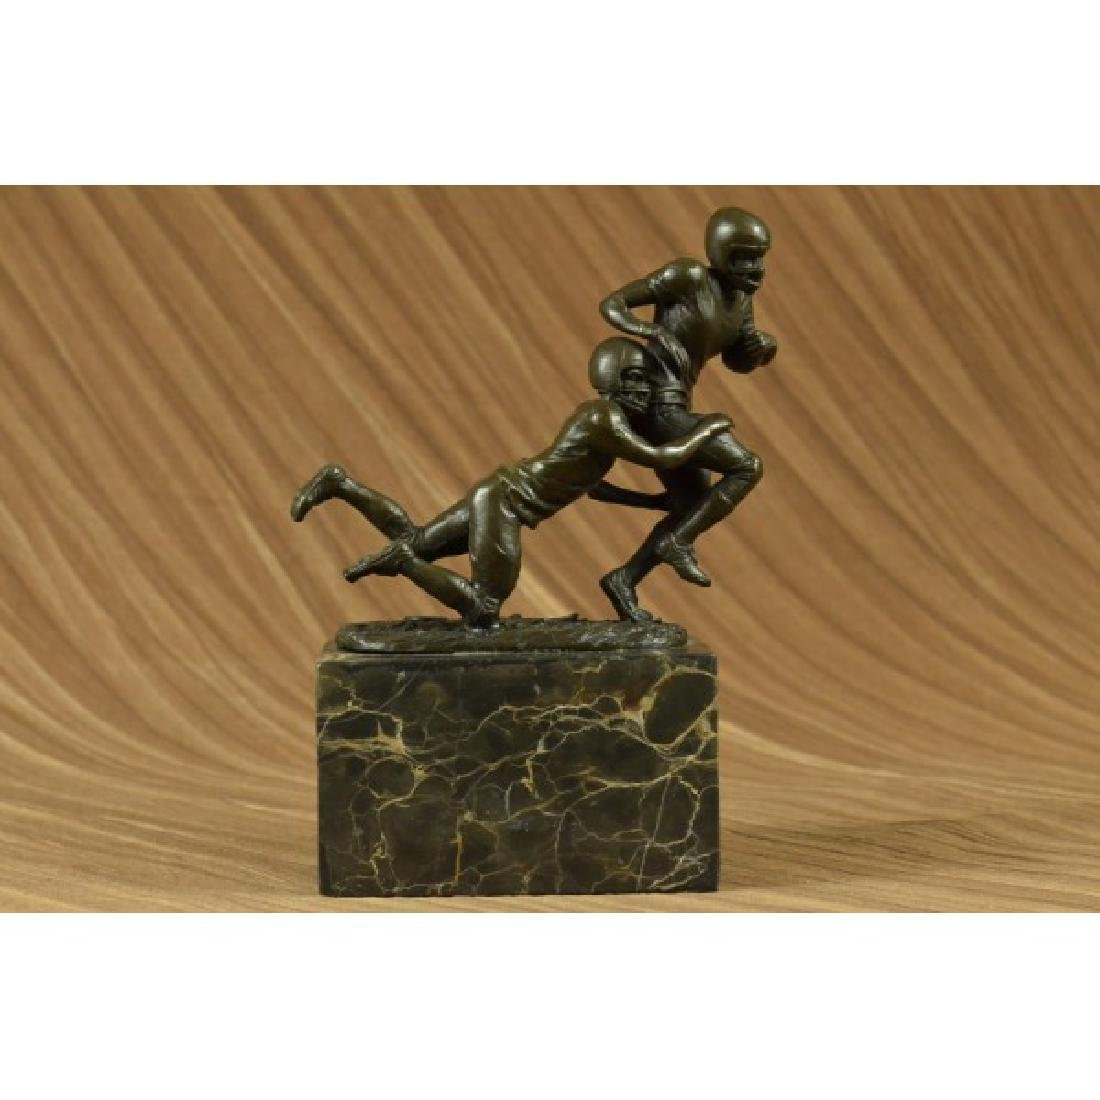 Two Muscular Football Players Rugby NFL Trophy Bronze